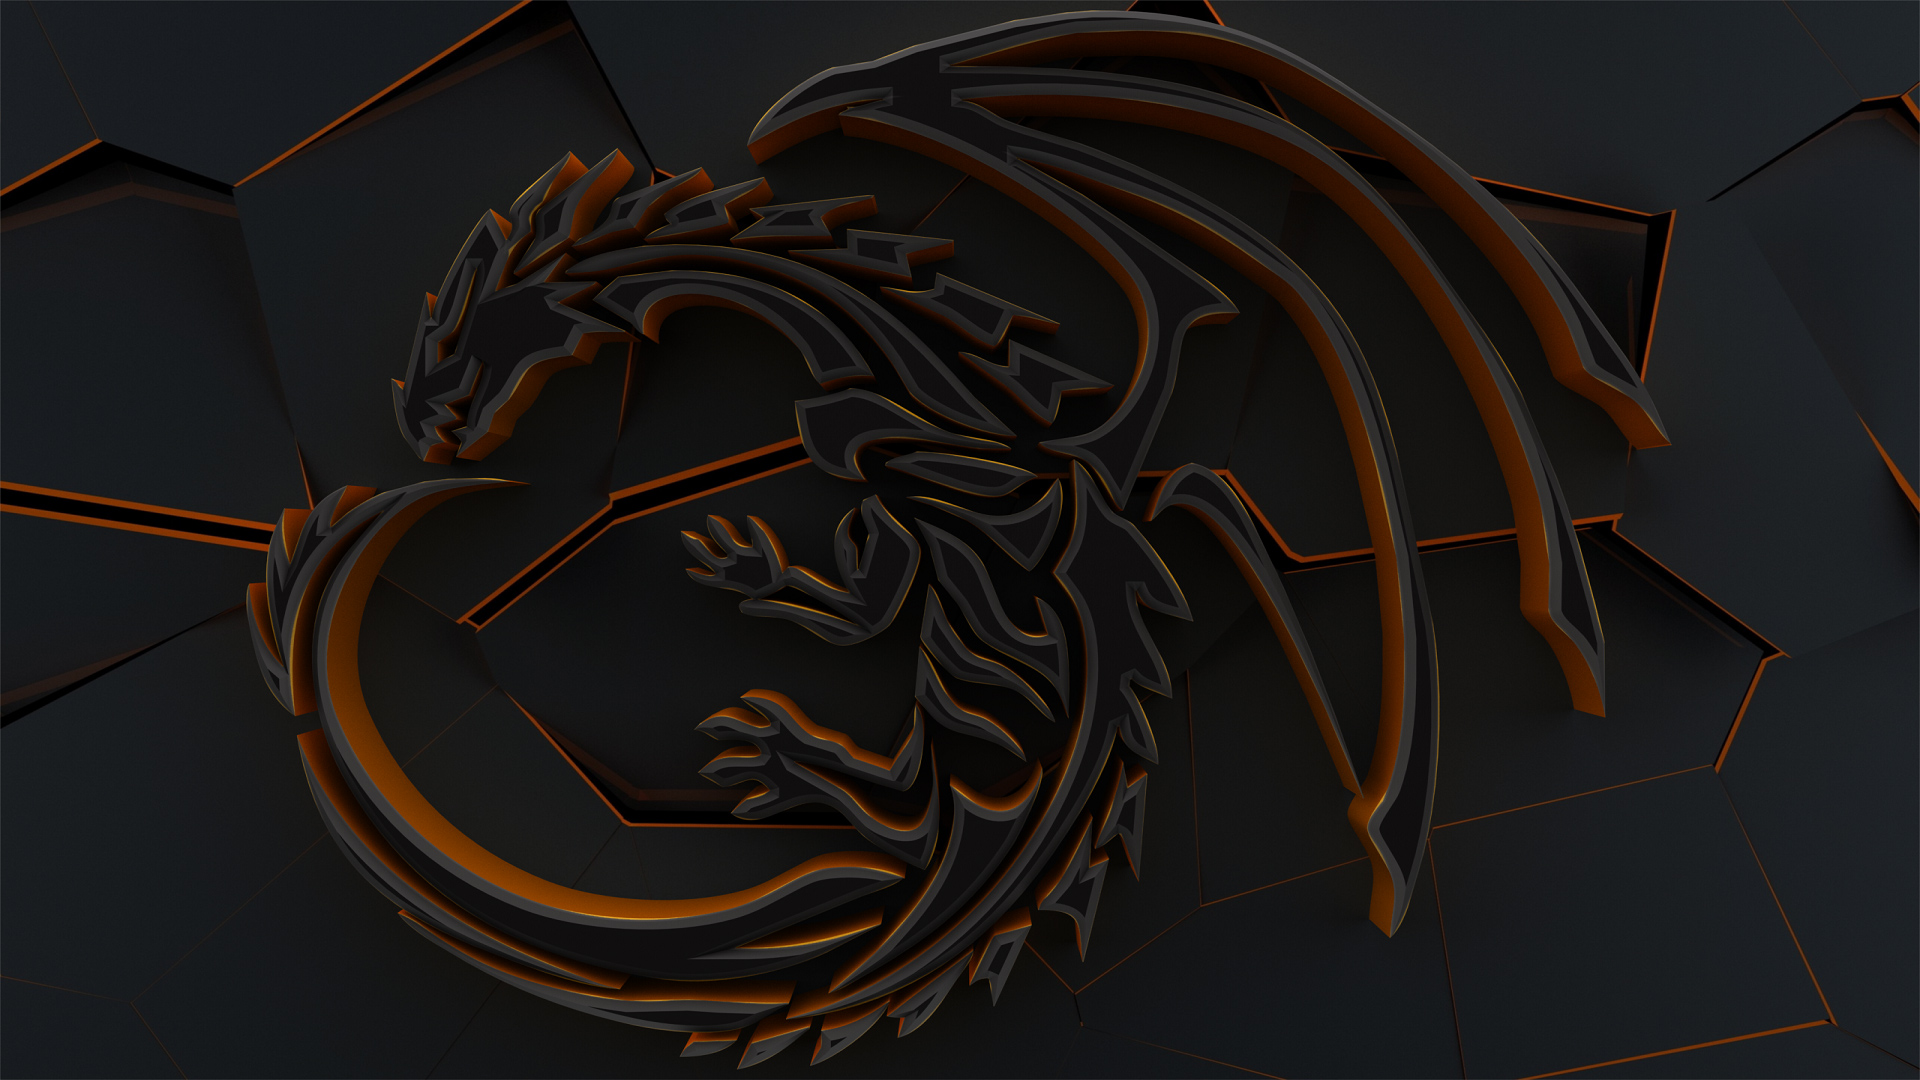 dragon 3d abstract cgi art, hd 3d, 4k wallpapers, images